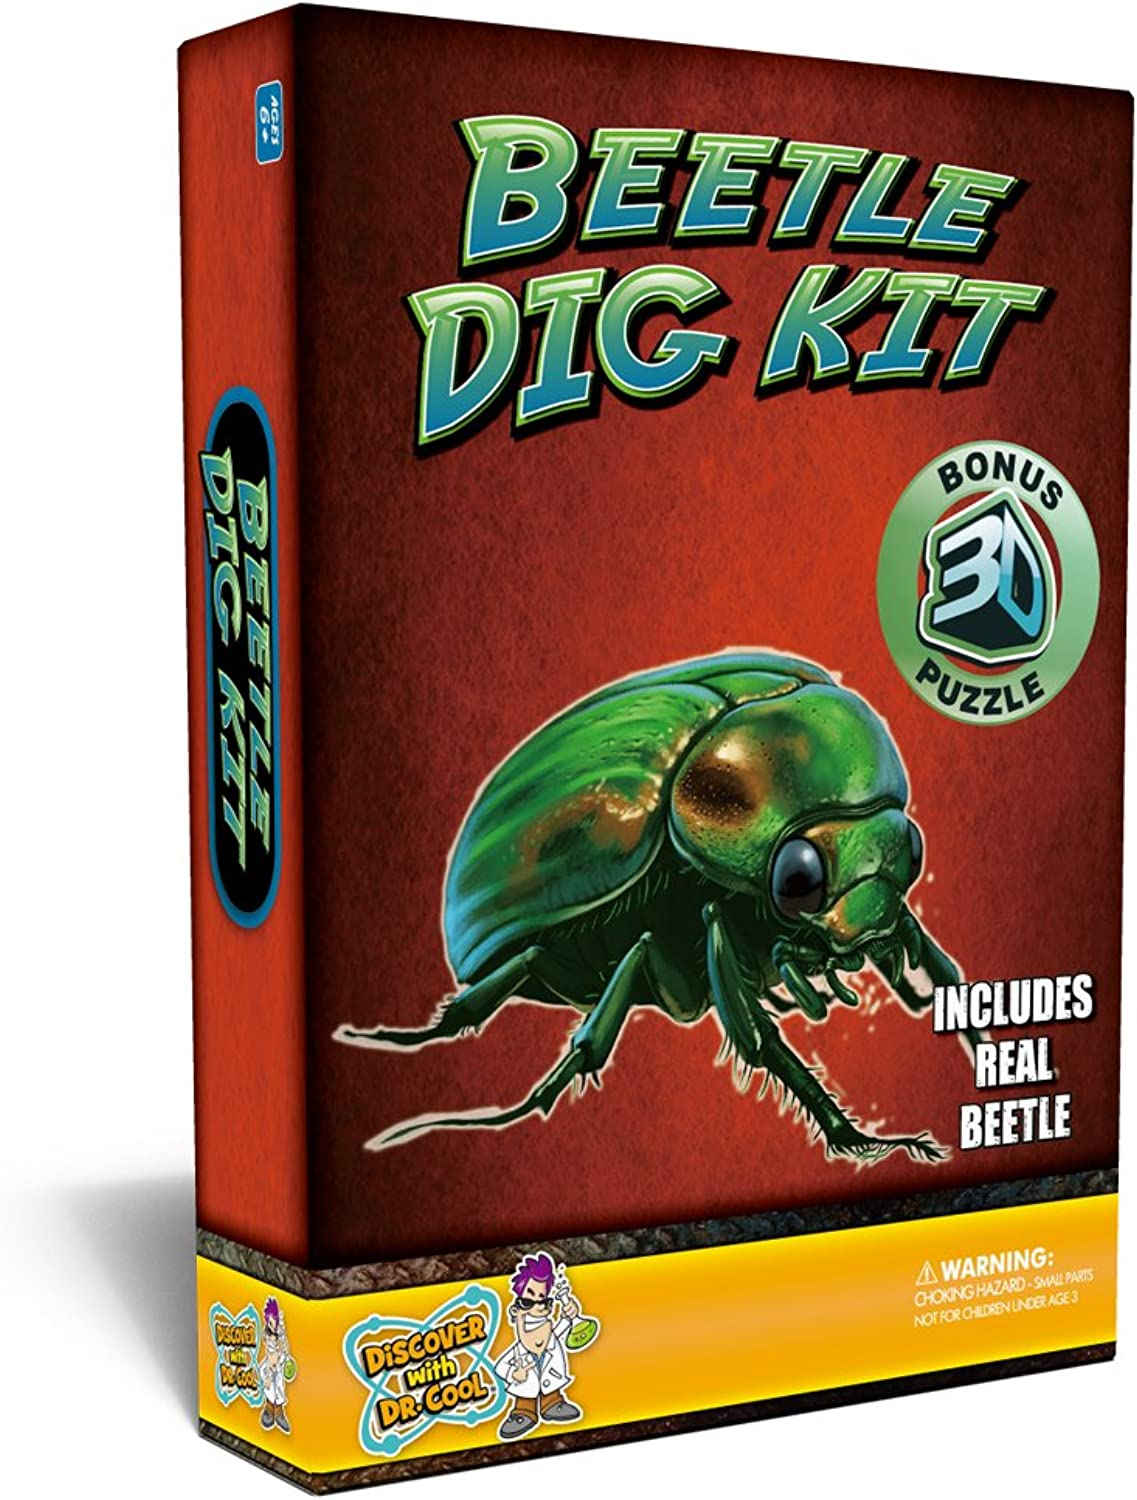 Discover with Dr. Cool Beetle Digging Kit, Includes Real Beetle in Acrylic